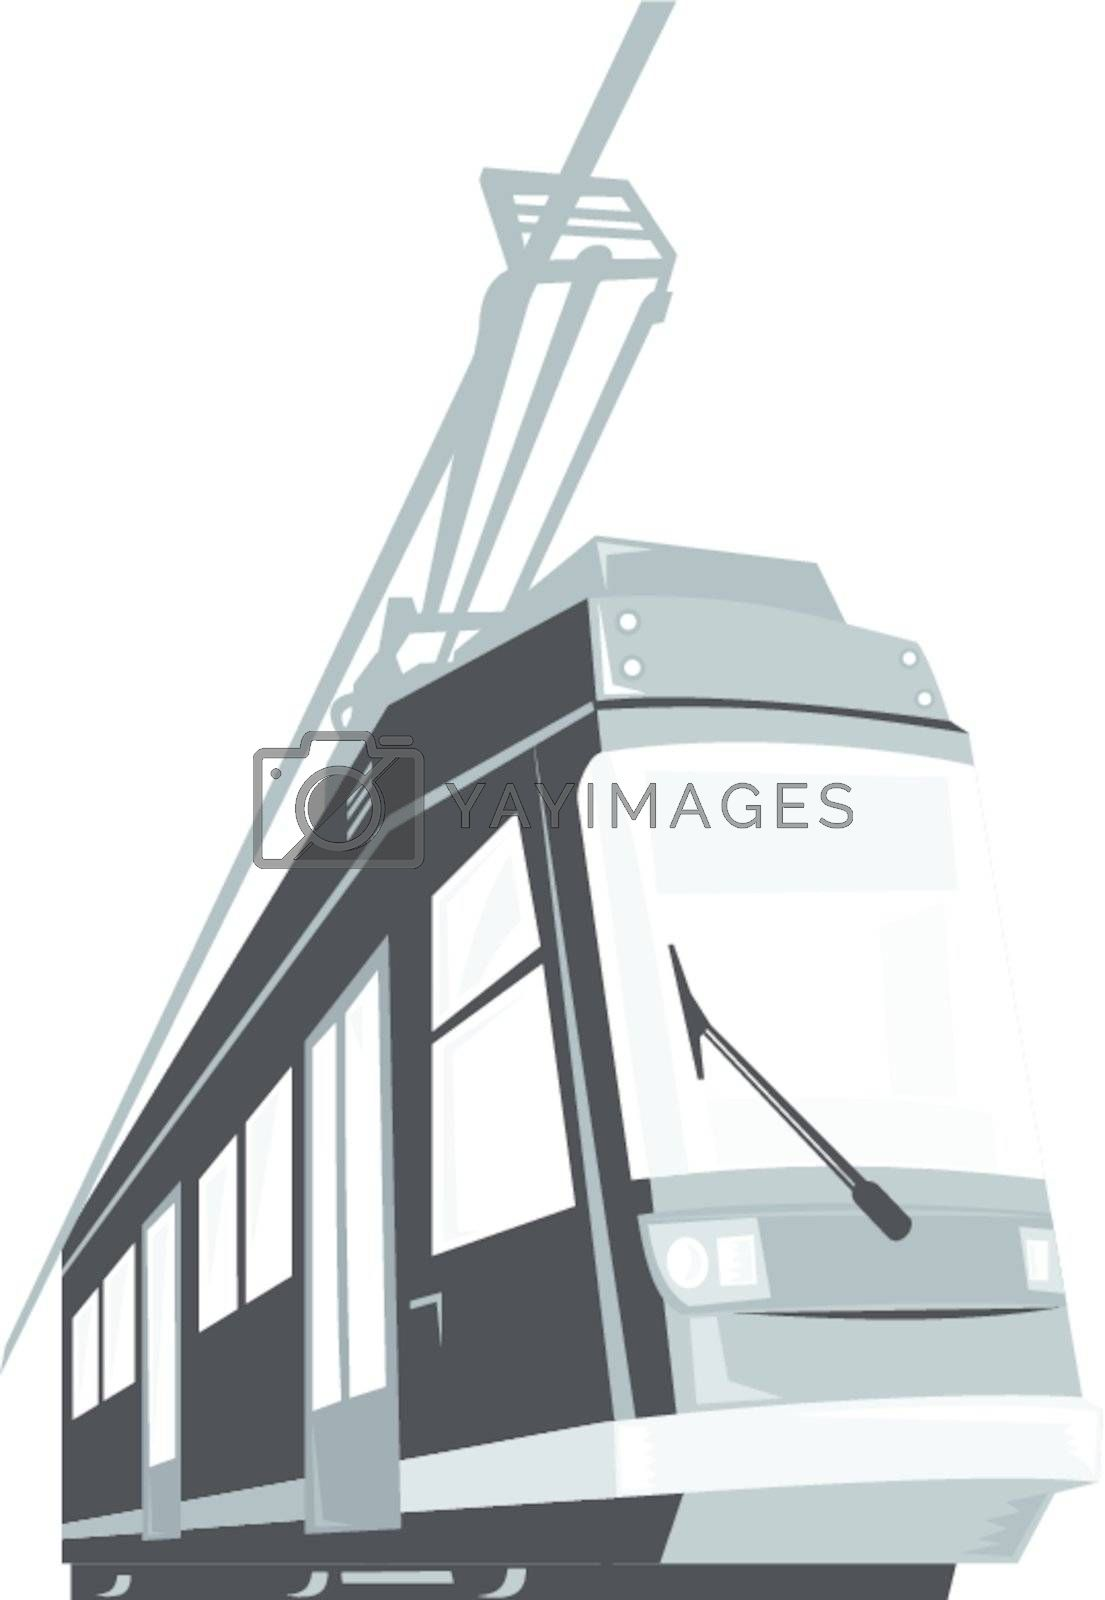 Illustration of a modern streetcar train tram viewed from a low angle on isolated white background done in retro style.